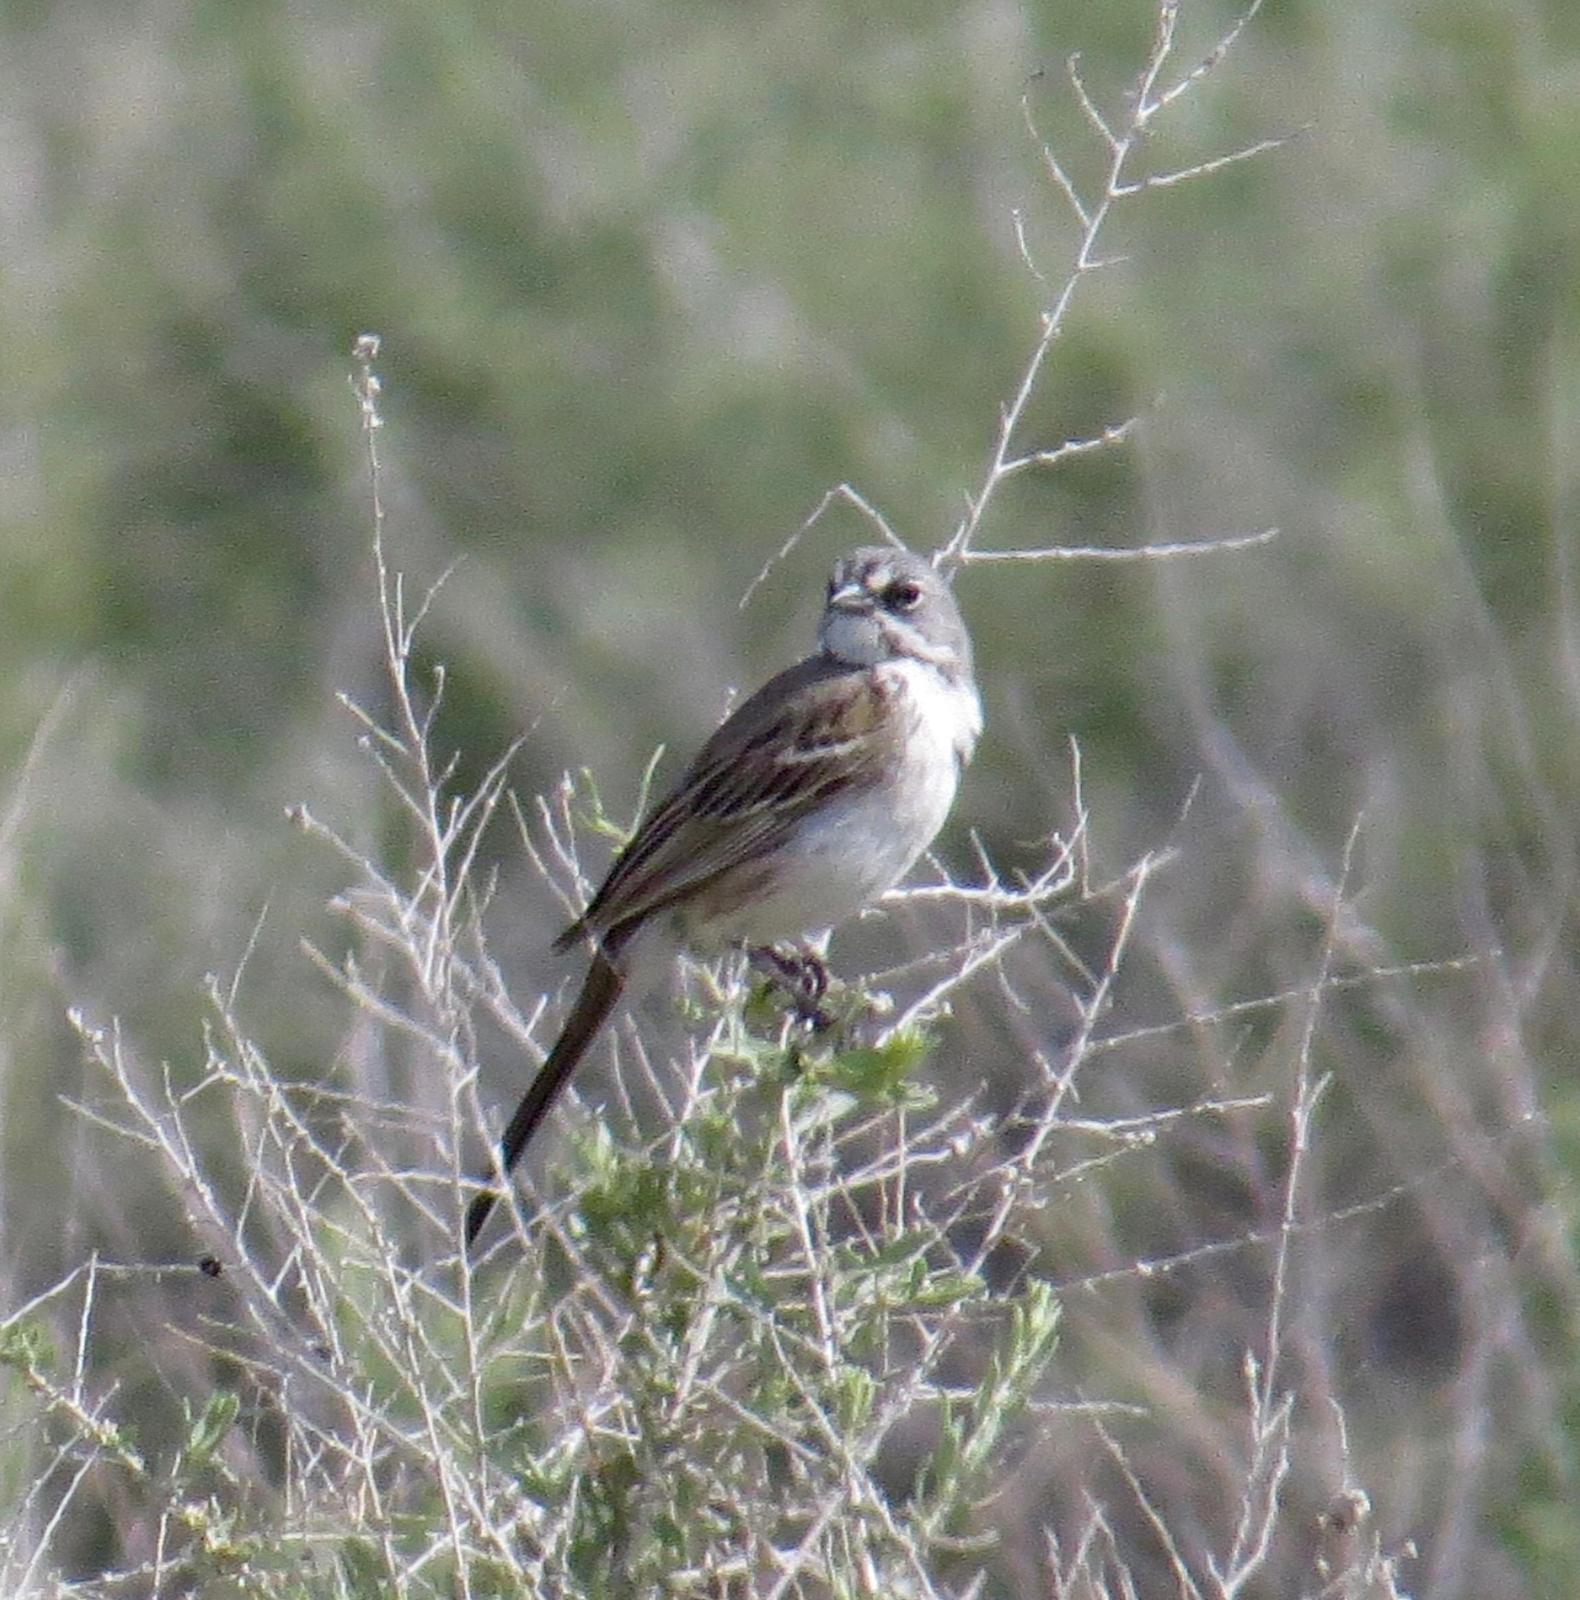 Bell's Sparrow Photo by Don Glasco